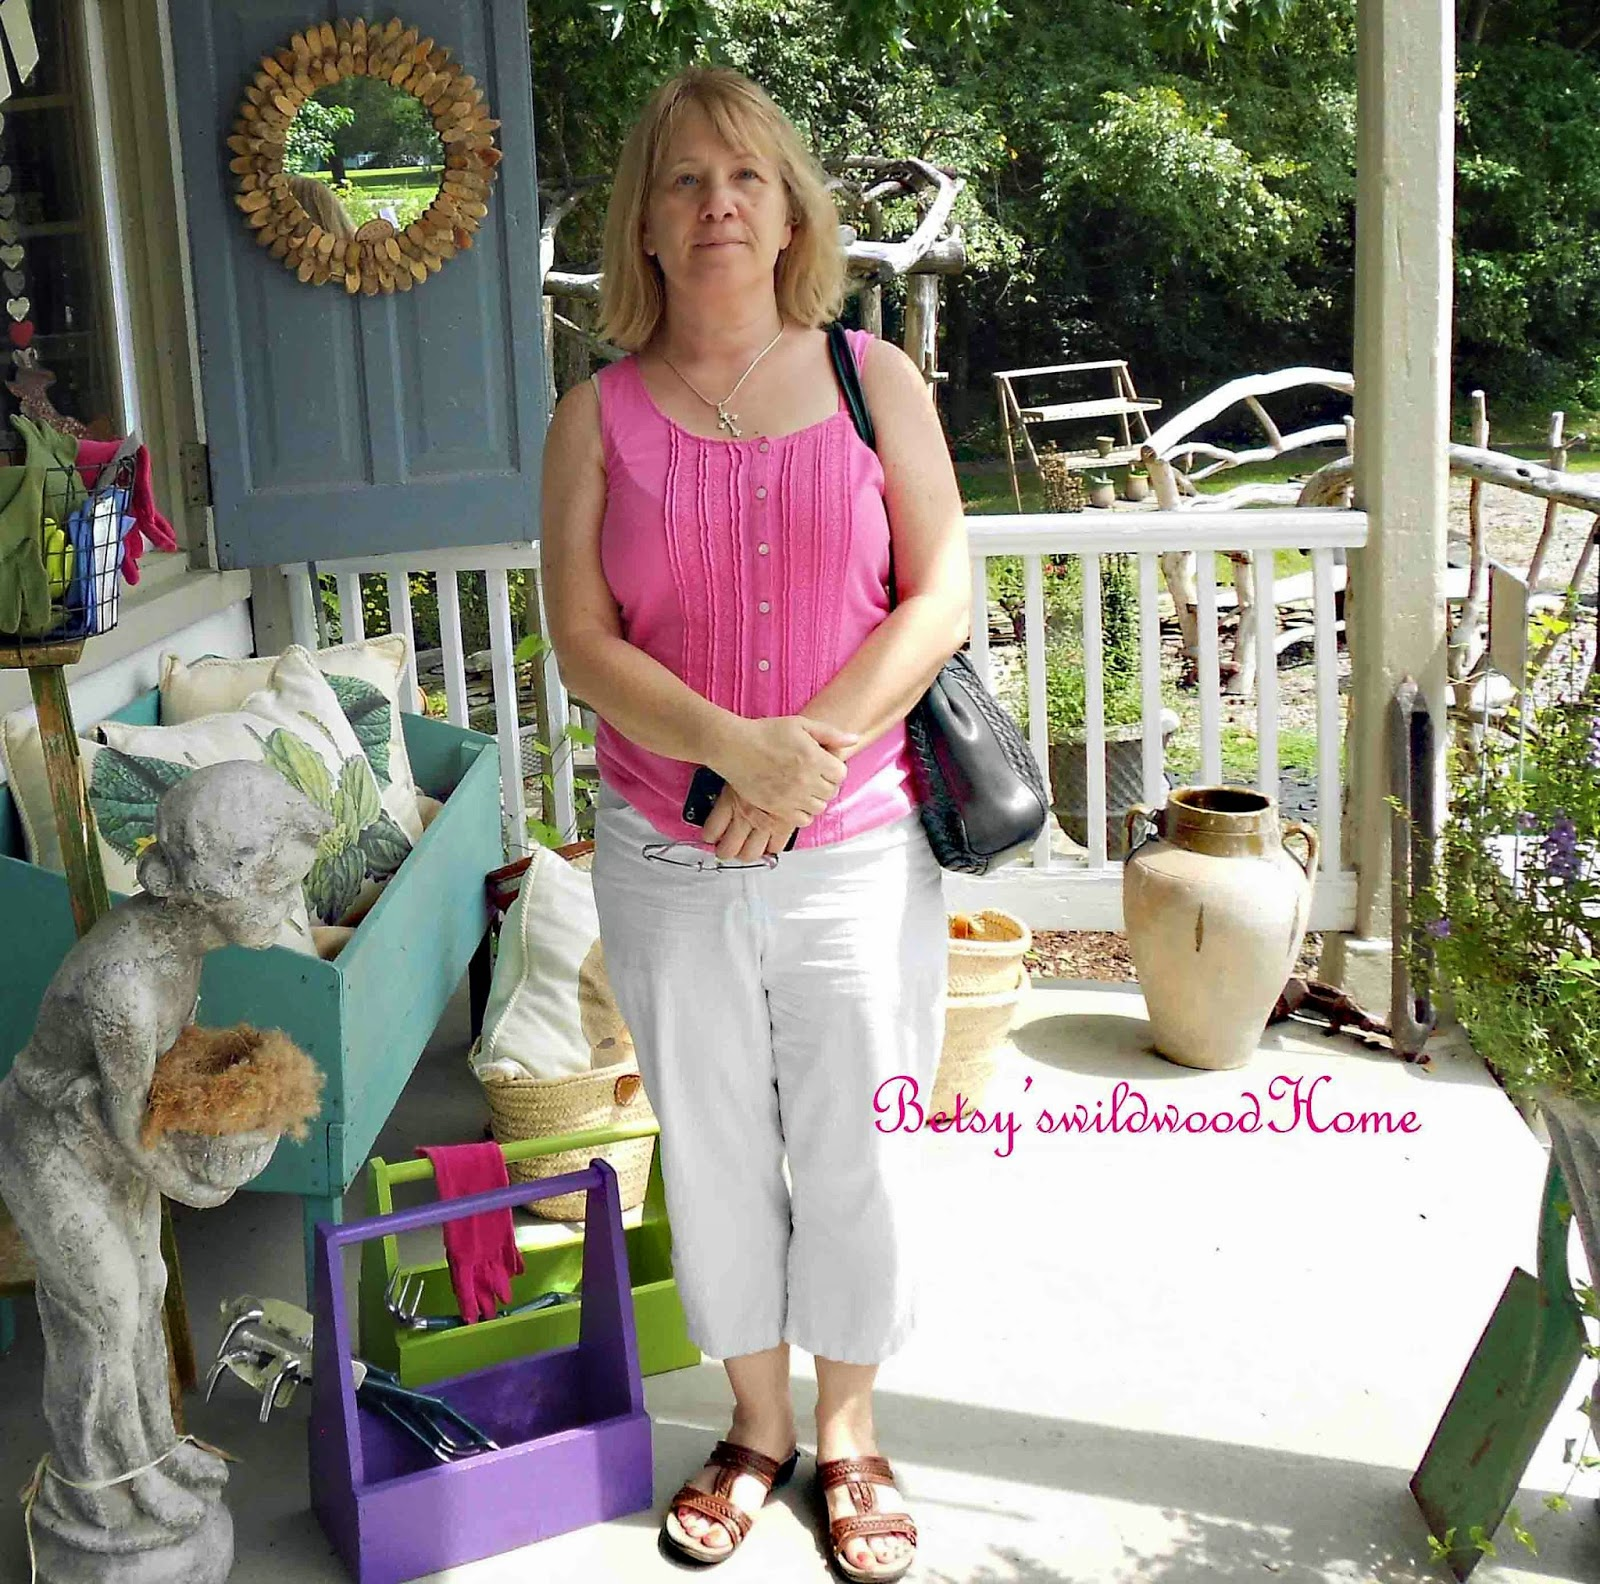 Betsy's Wildwood Home: Happy Birthday Donna And A Cake